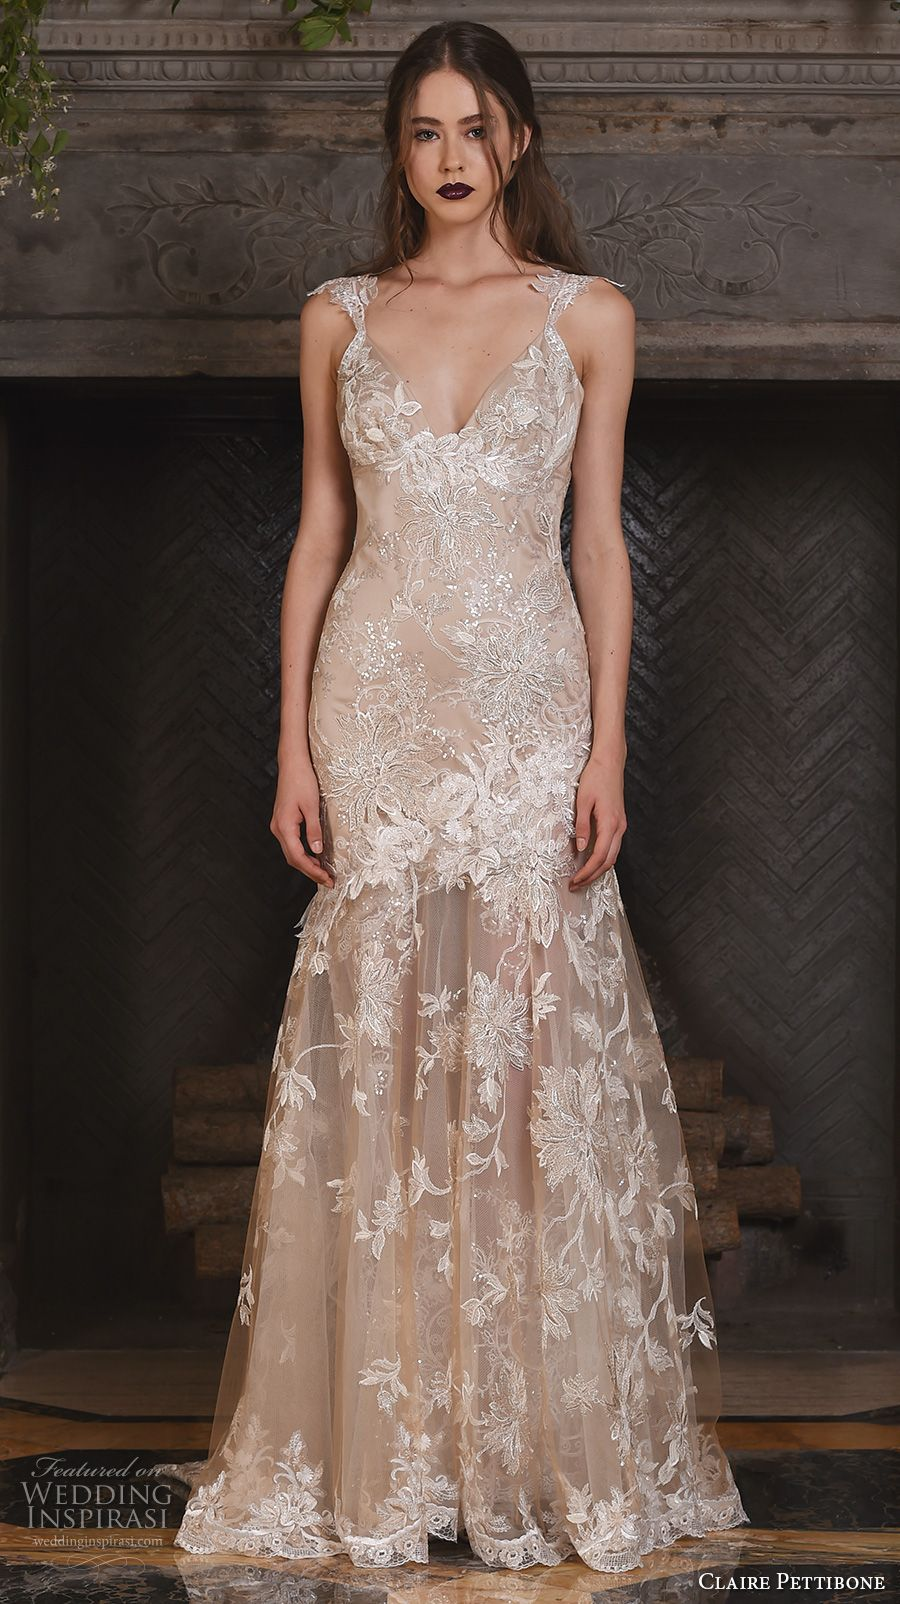 Claire pettibone fall wedding dresses u ucthe four seasons